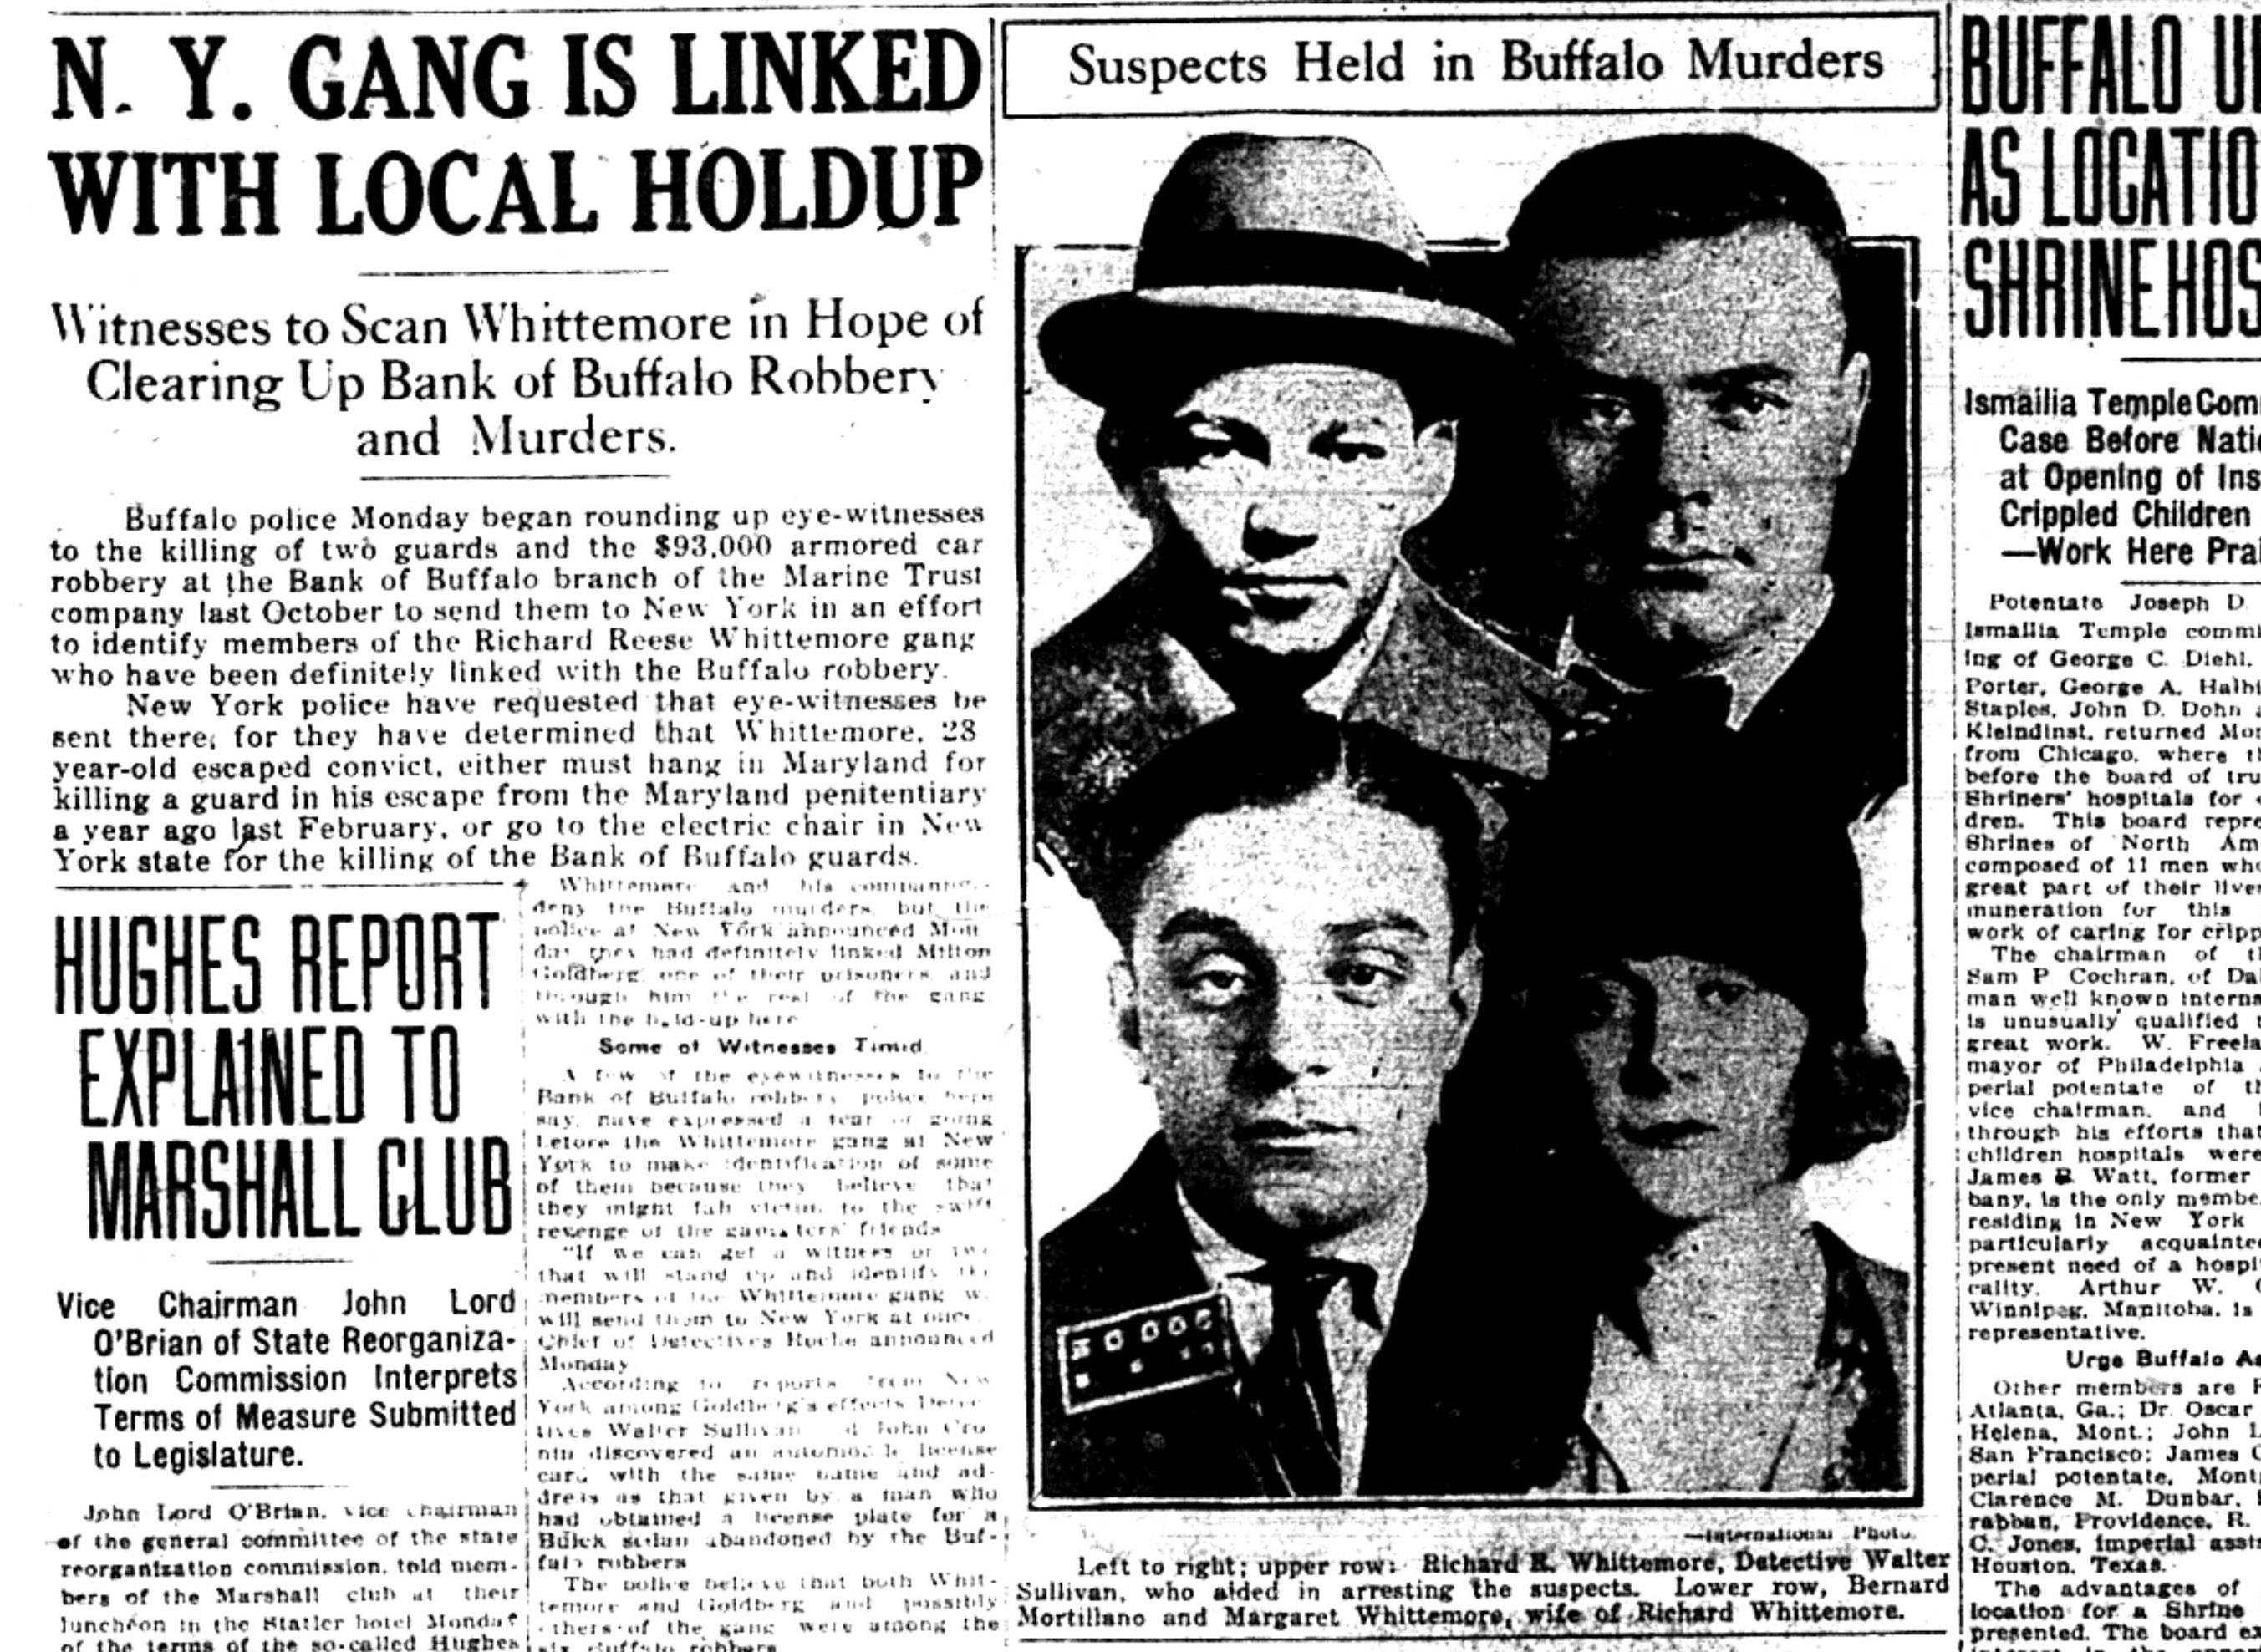 "The arrest of Richard ""Candy Kid"" Whittemore and his wife, Margaret ""Tiger Girl"" Whittemore, made the front page of the March 22, 1926."